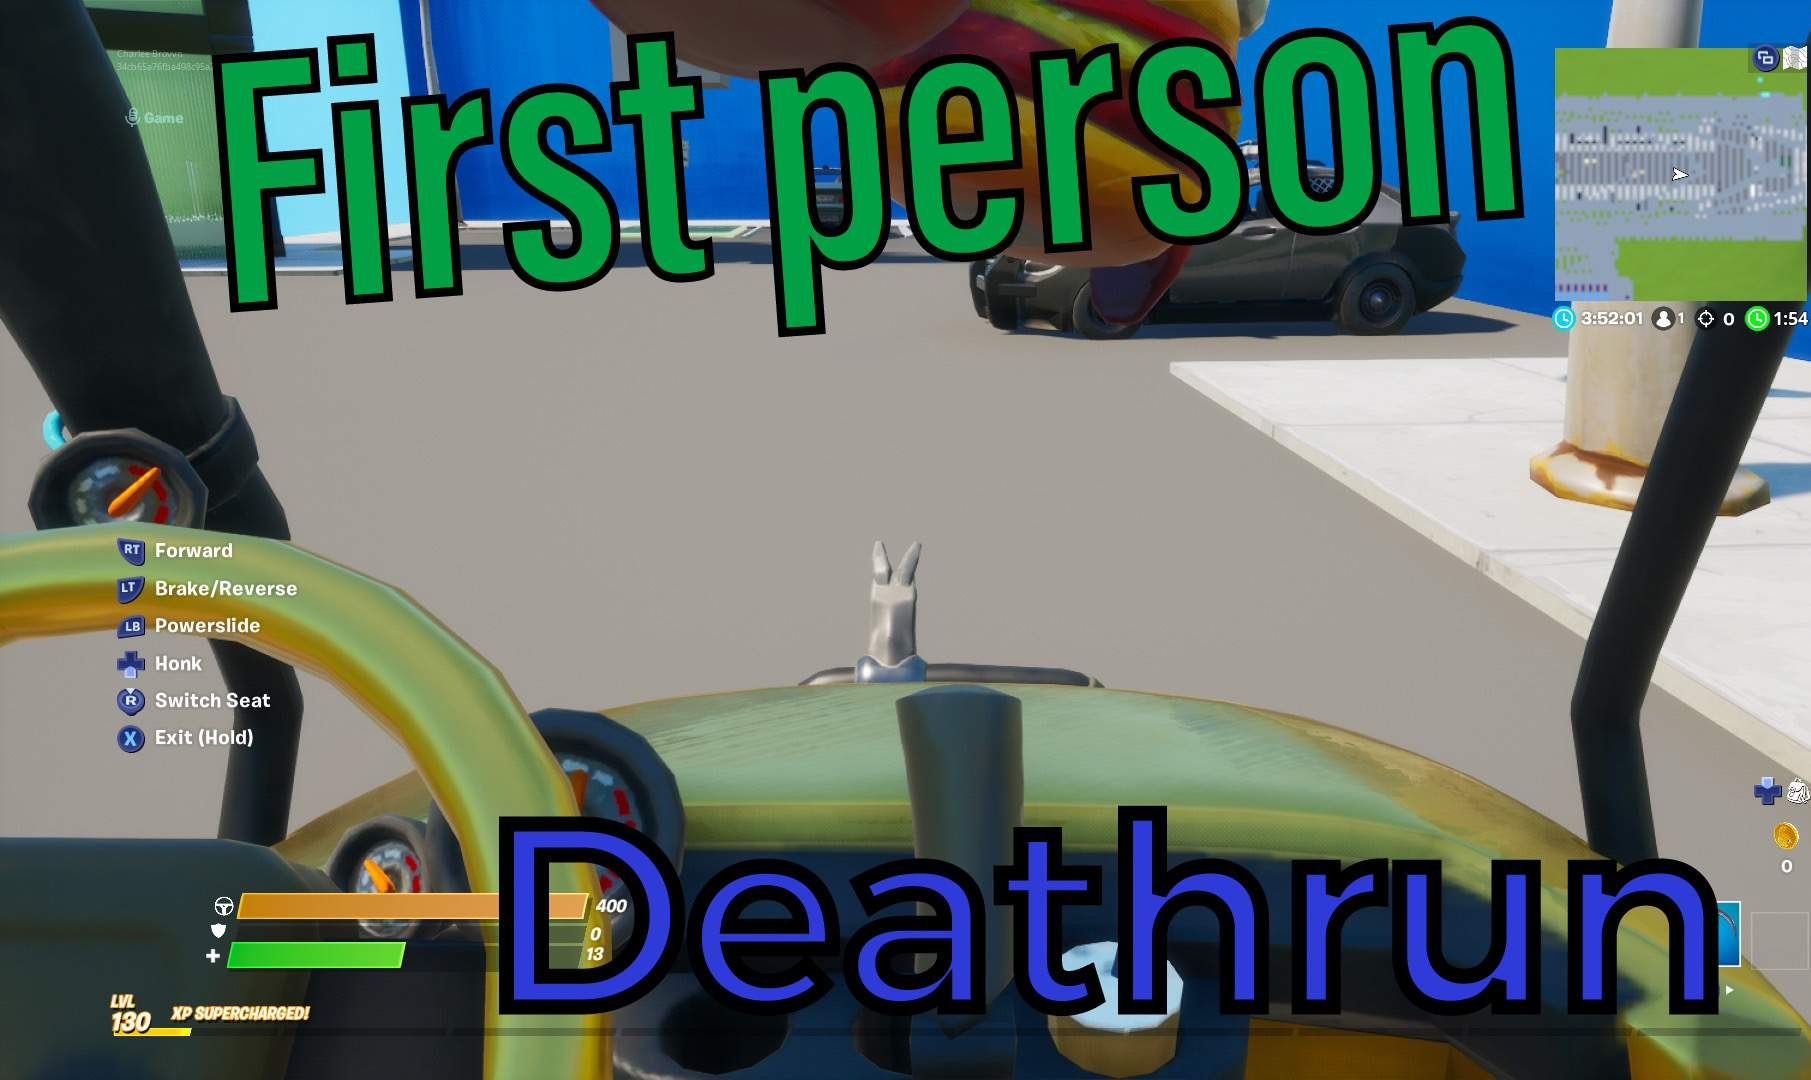 FIRST PERSON DEATHRUN